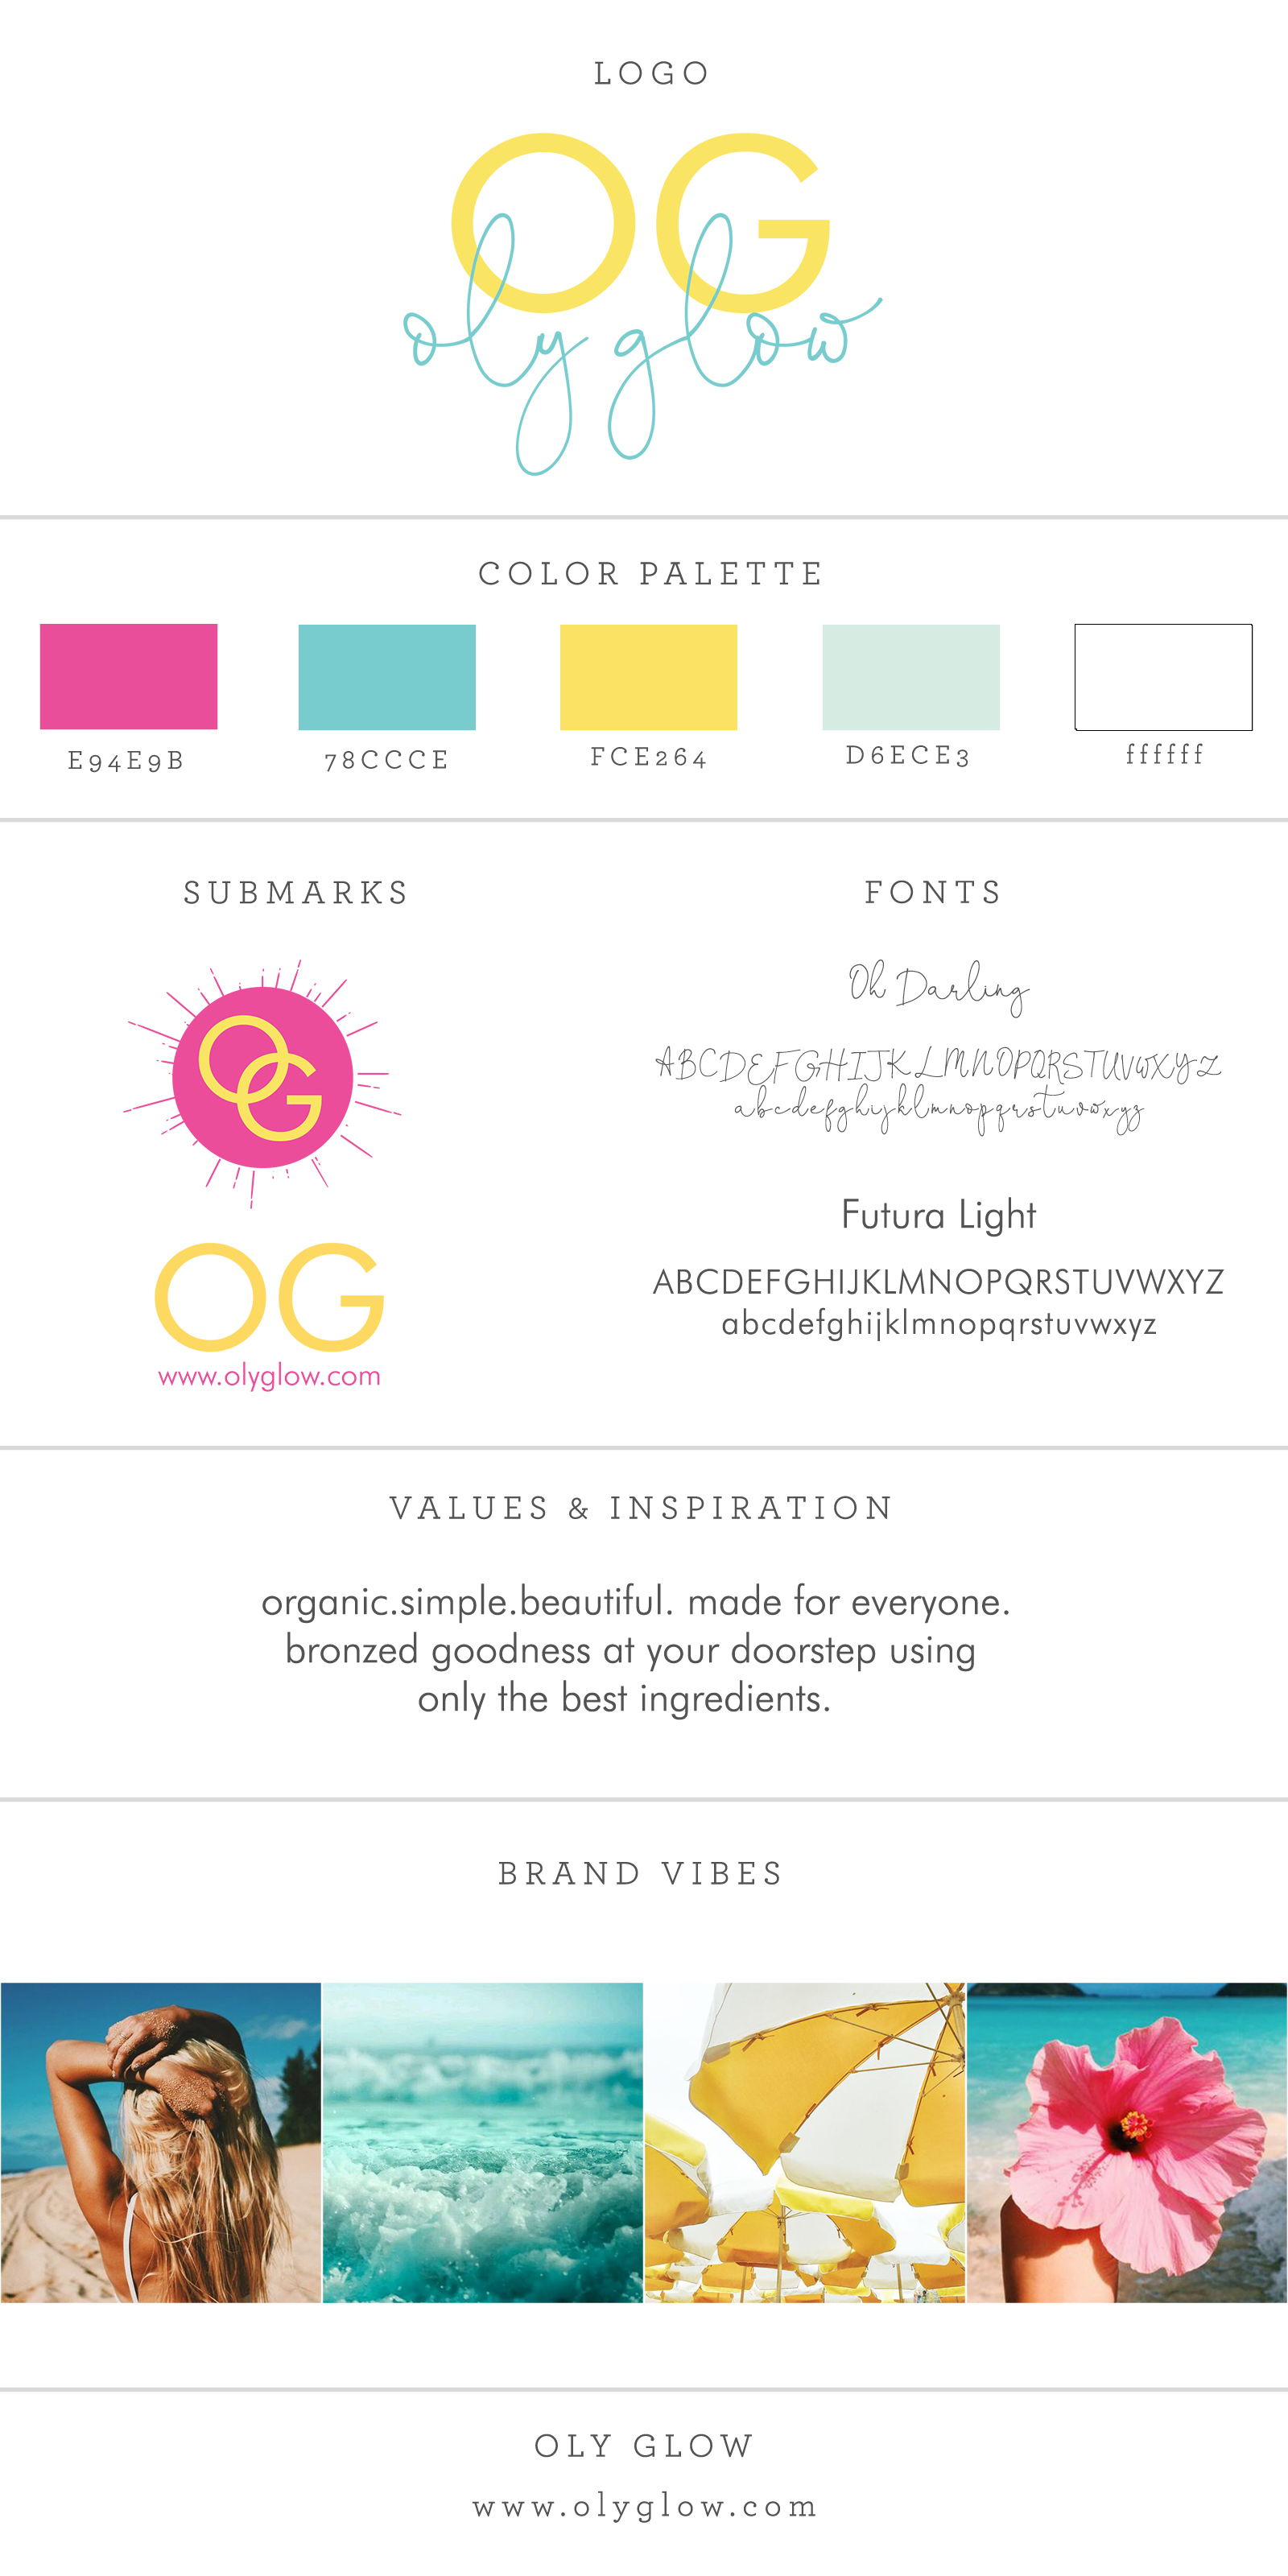 OlyGlow_styleguide-01.png